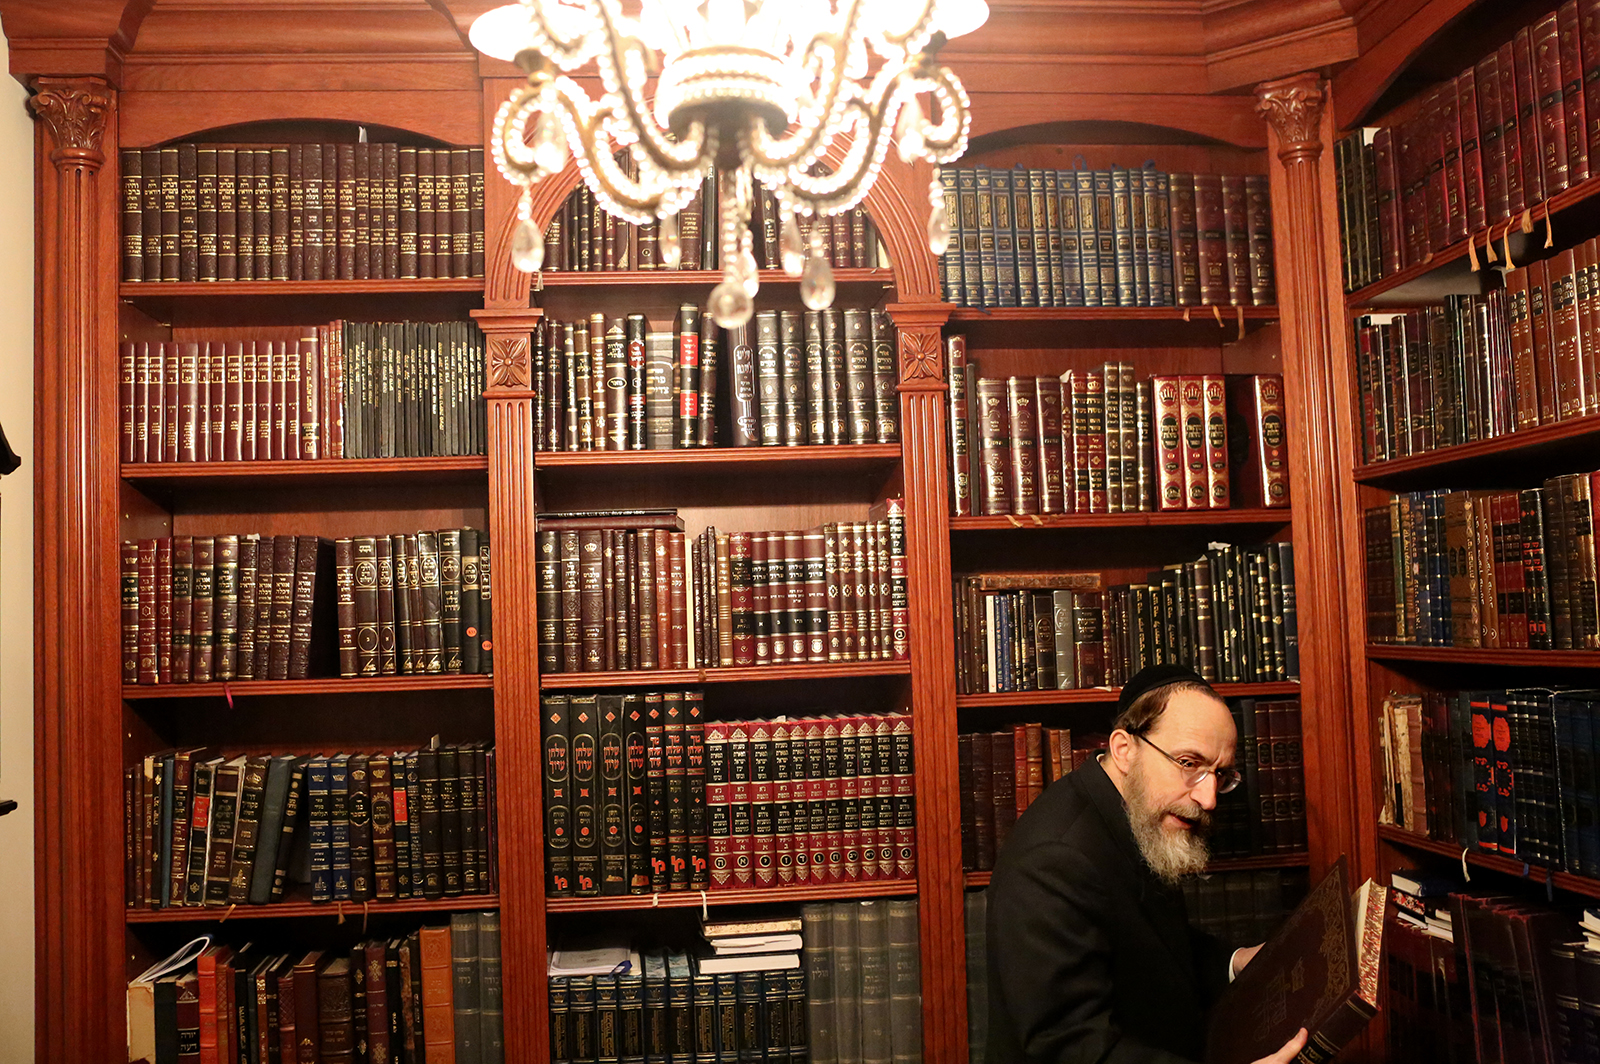 David Freier shows ancient texts on the Torah in his home in Borough Park in Brooklyn, New York on December 06, 2020. David's wife Rachel Freier and daughter Leah Levine run Ezrash Nashim, the first all-female EMT corps aimed at servicing Orthodox Jewish communities of women. (Photo by: Yana Paskova for The New York Times/the National Geographic Society)